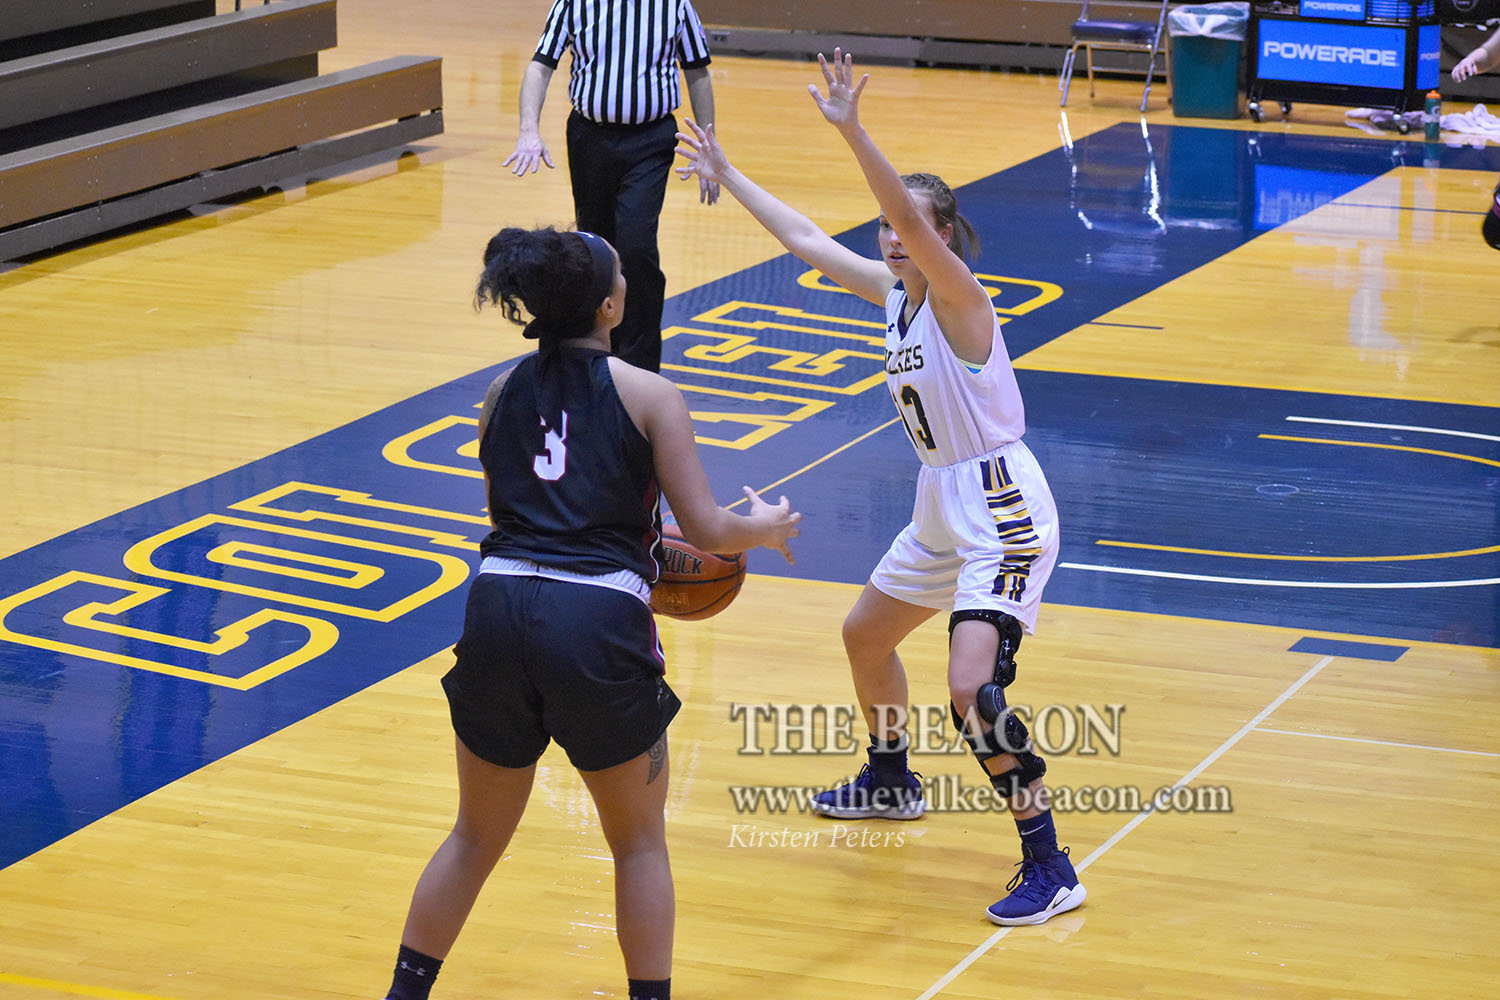 Sophomore forward Gabby Smicherko, who contributed 12 points, seven rebounds and three steals, defends Manhattanville's Ali Mikaele who looks to take a shot from the corner.